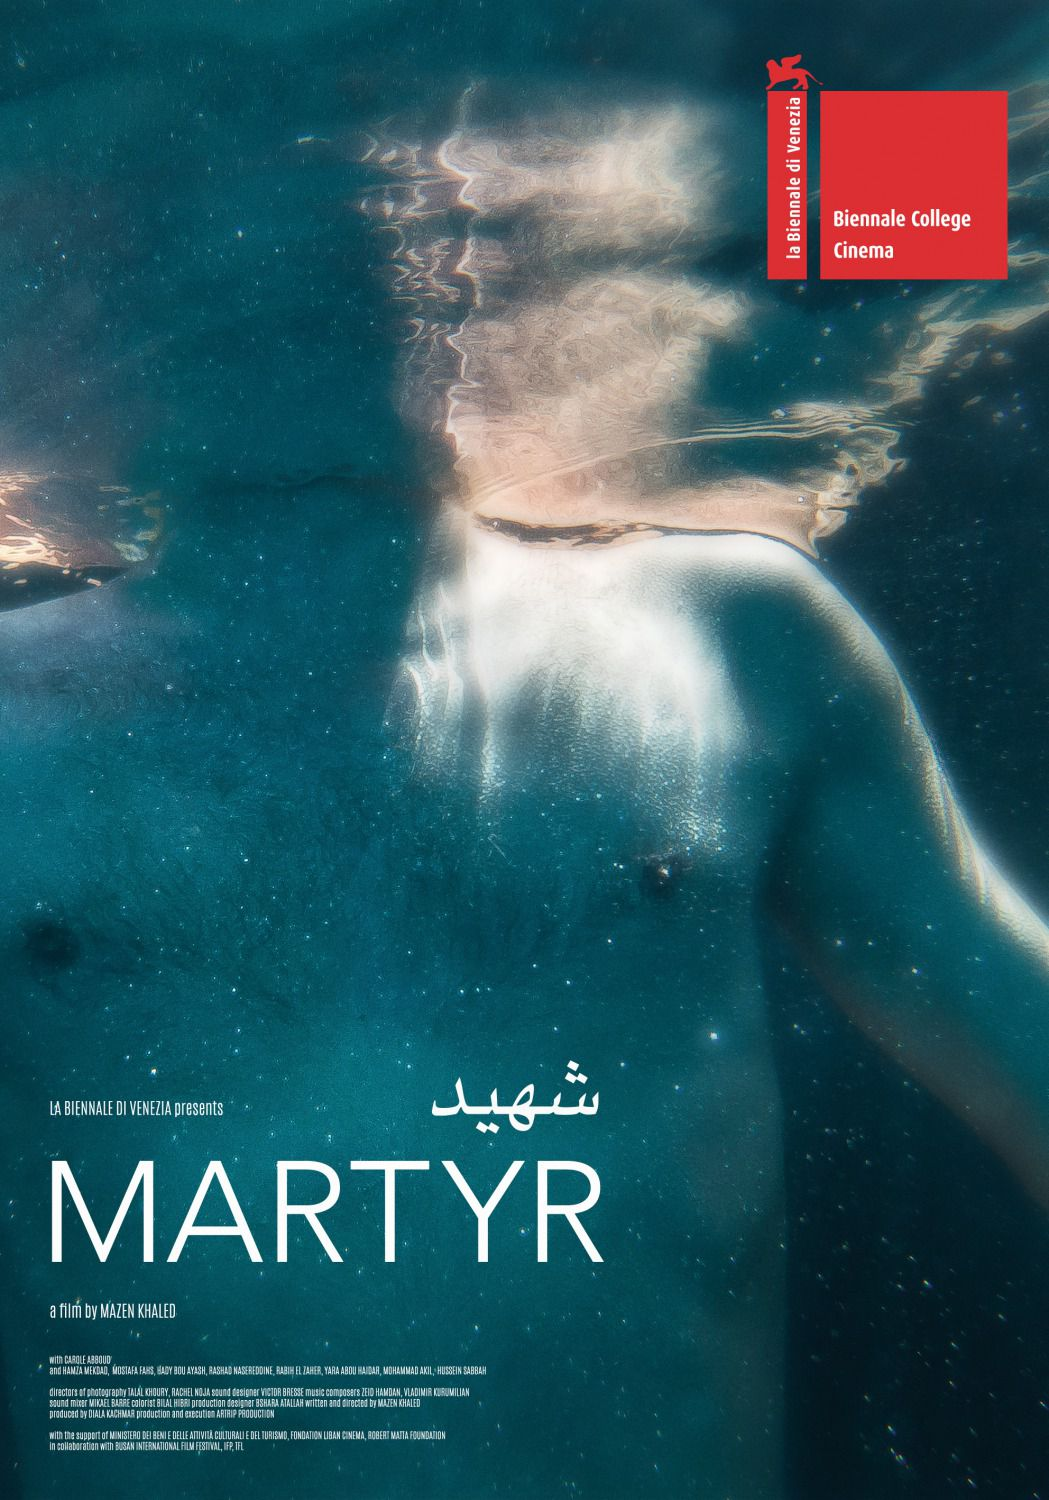 Martyr - film water poster 2018